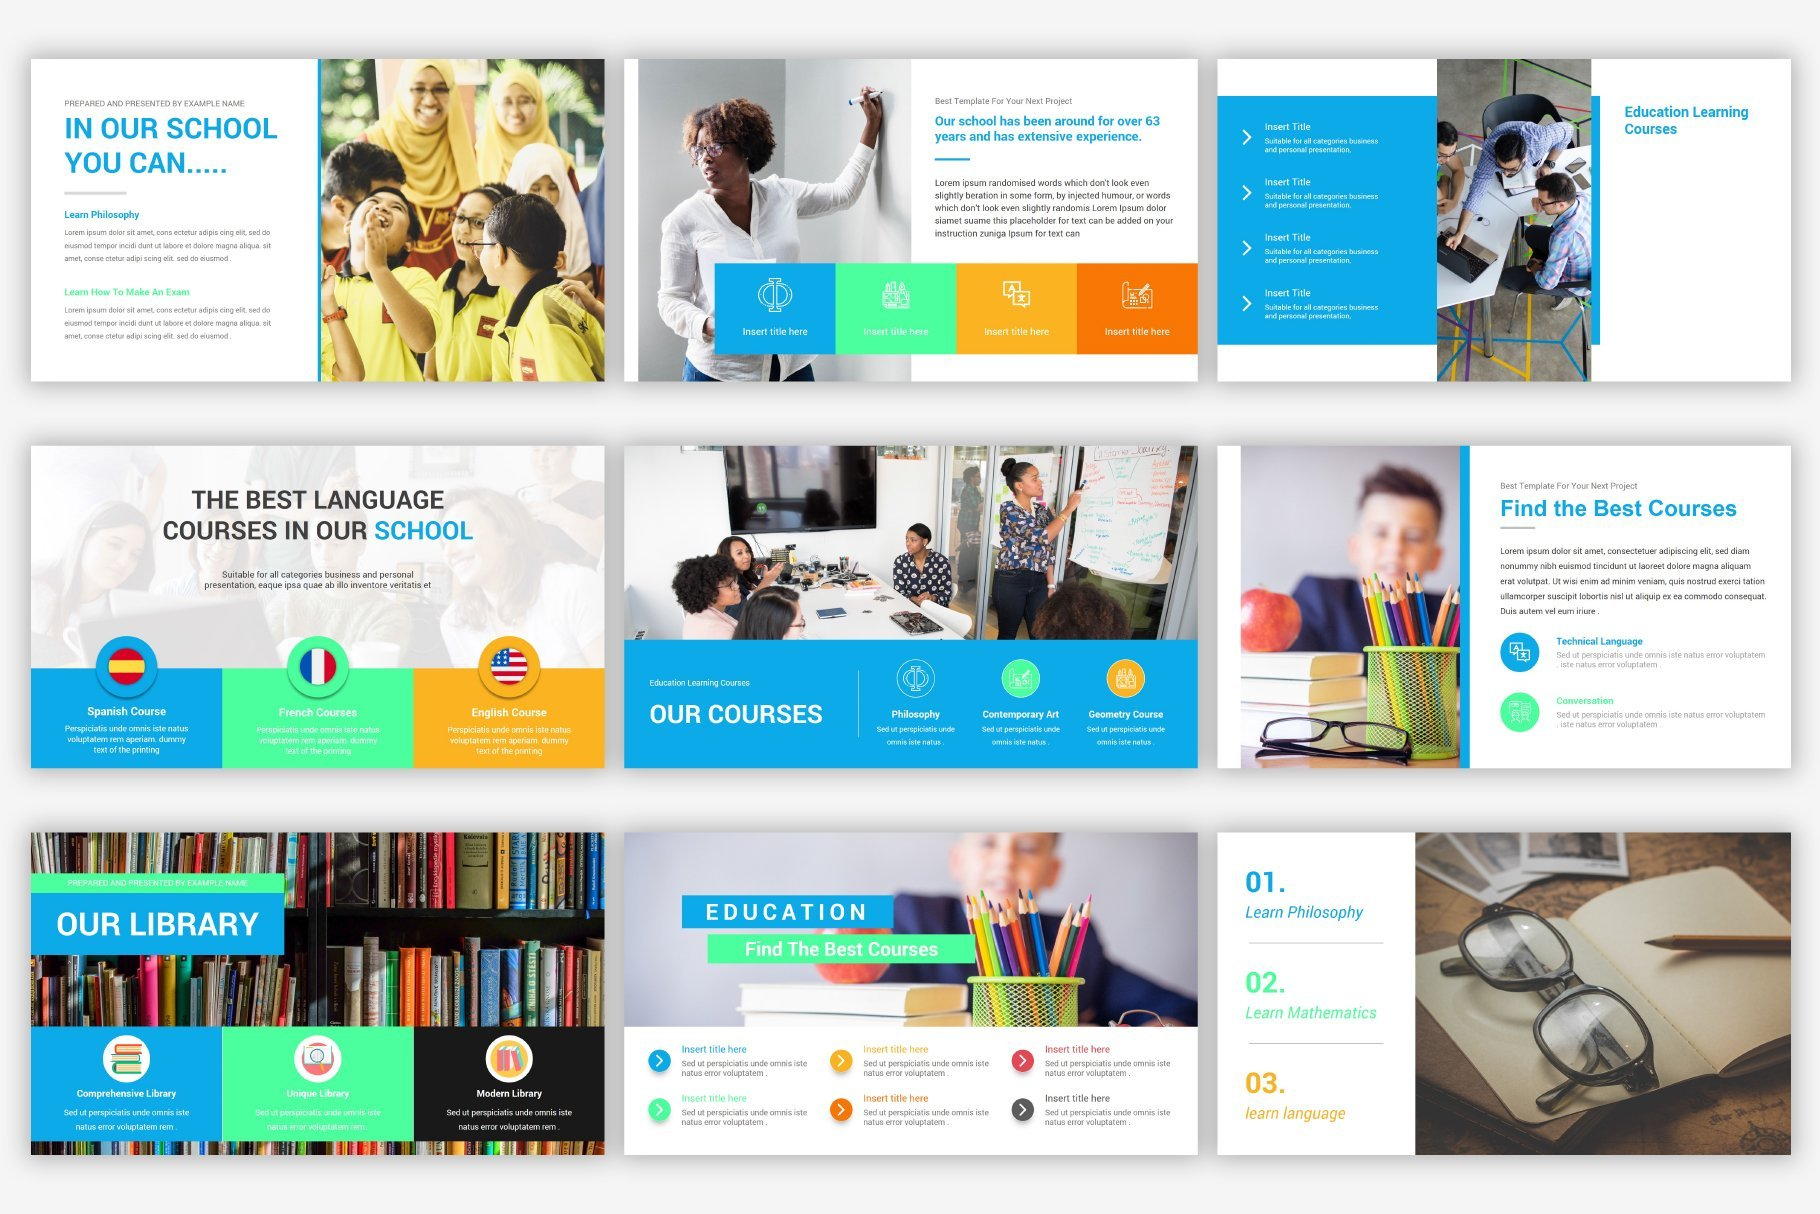 The template has a collection of icons and infographics that will fit perfectly into the theme.